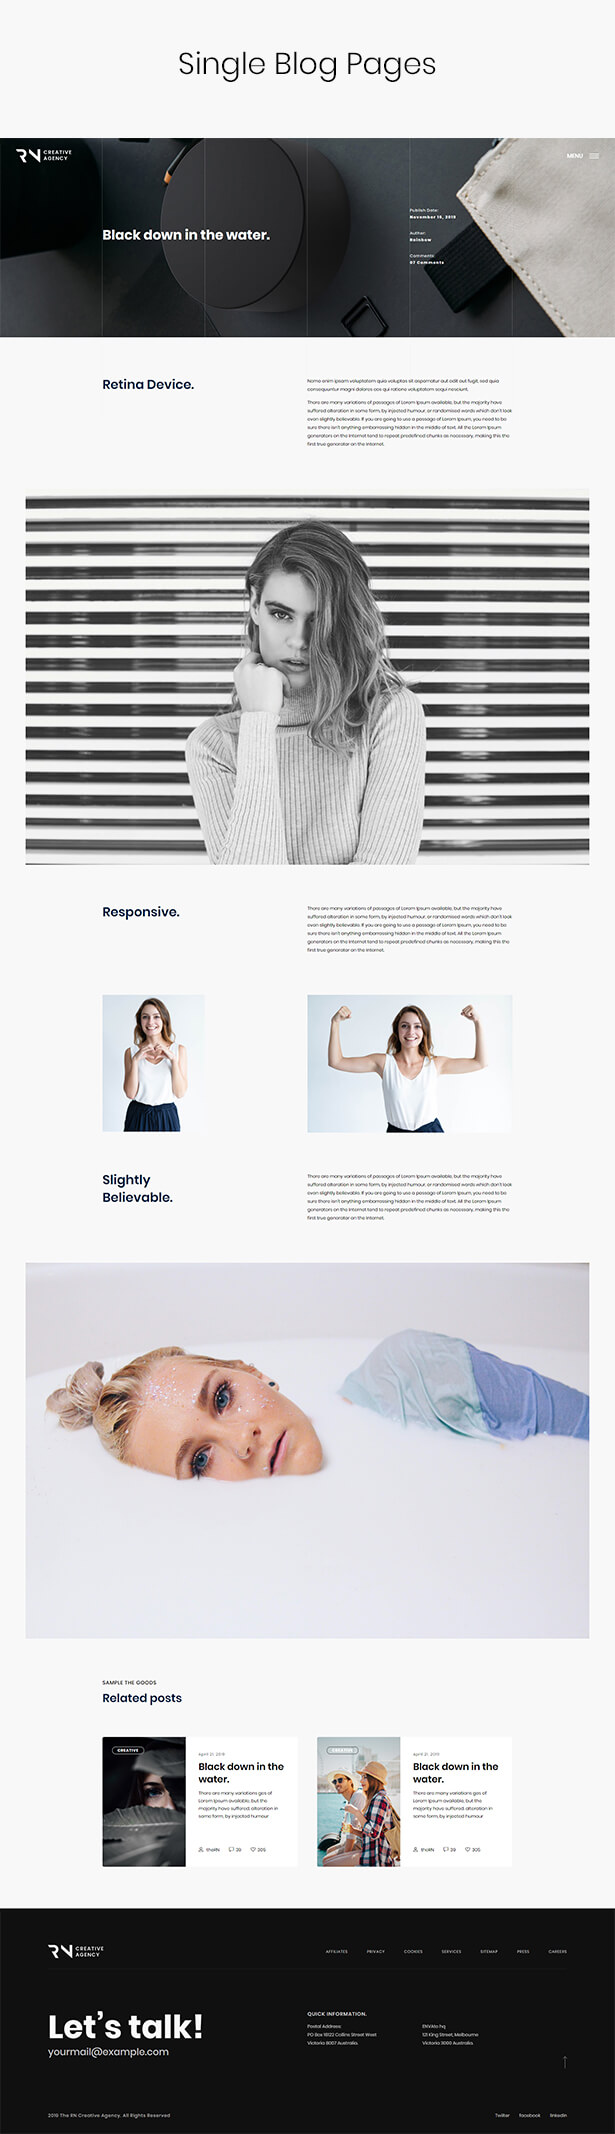 TheRN - Creative Agency React Gatsby Template - 7